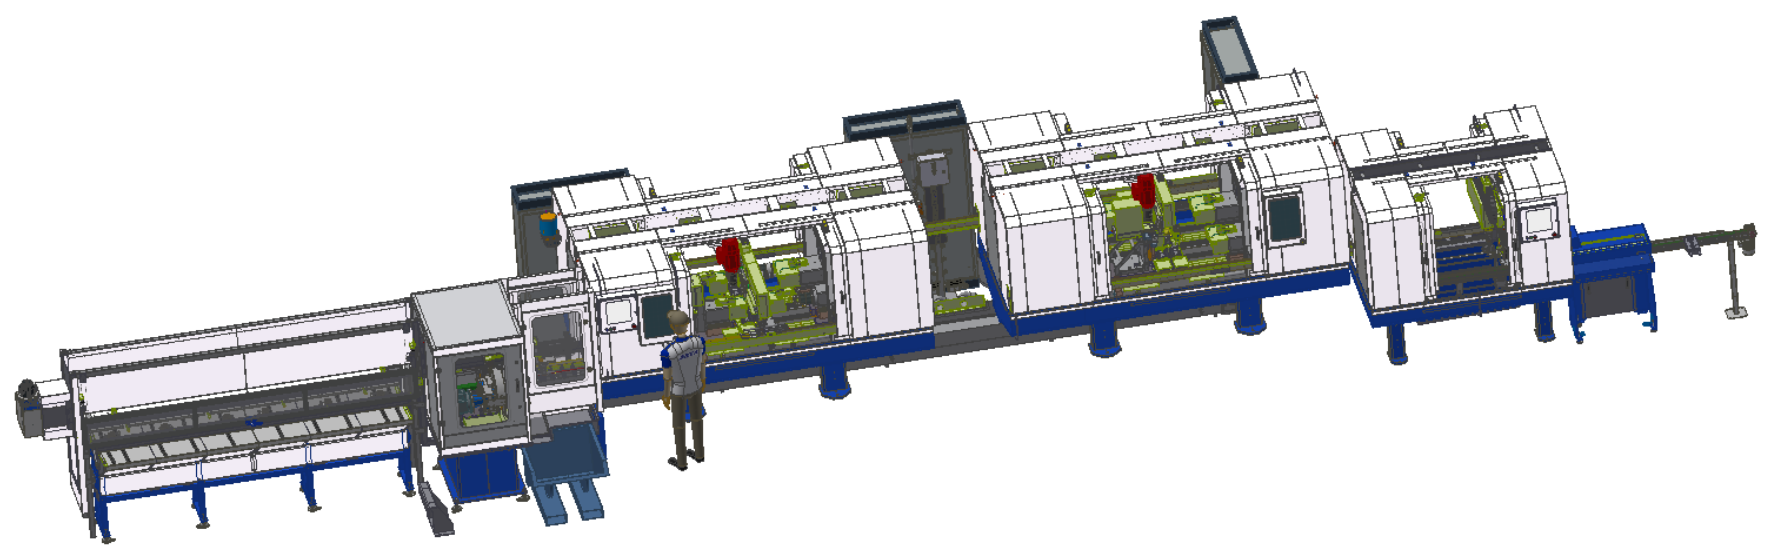 Fully automatic Hybrid Special Line for bar and tube materials, configurable with 8 to 16 spindles and multiple machining operations